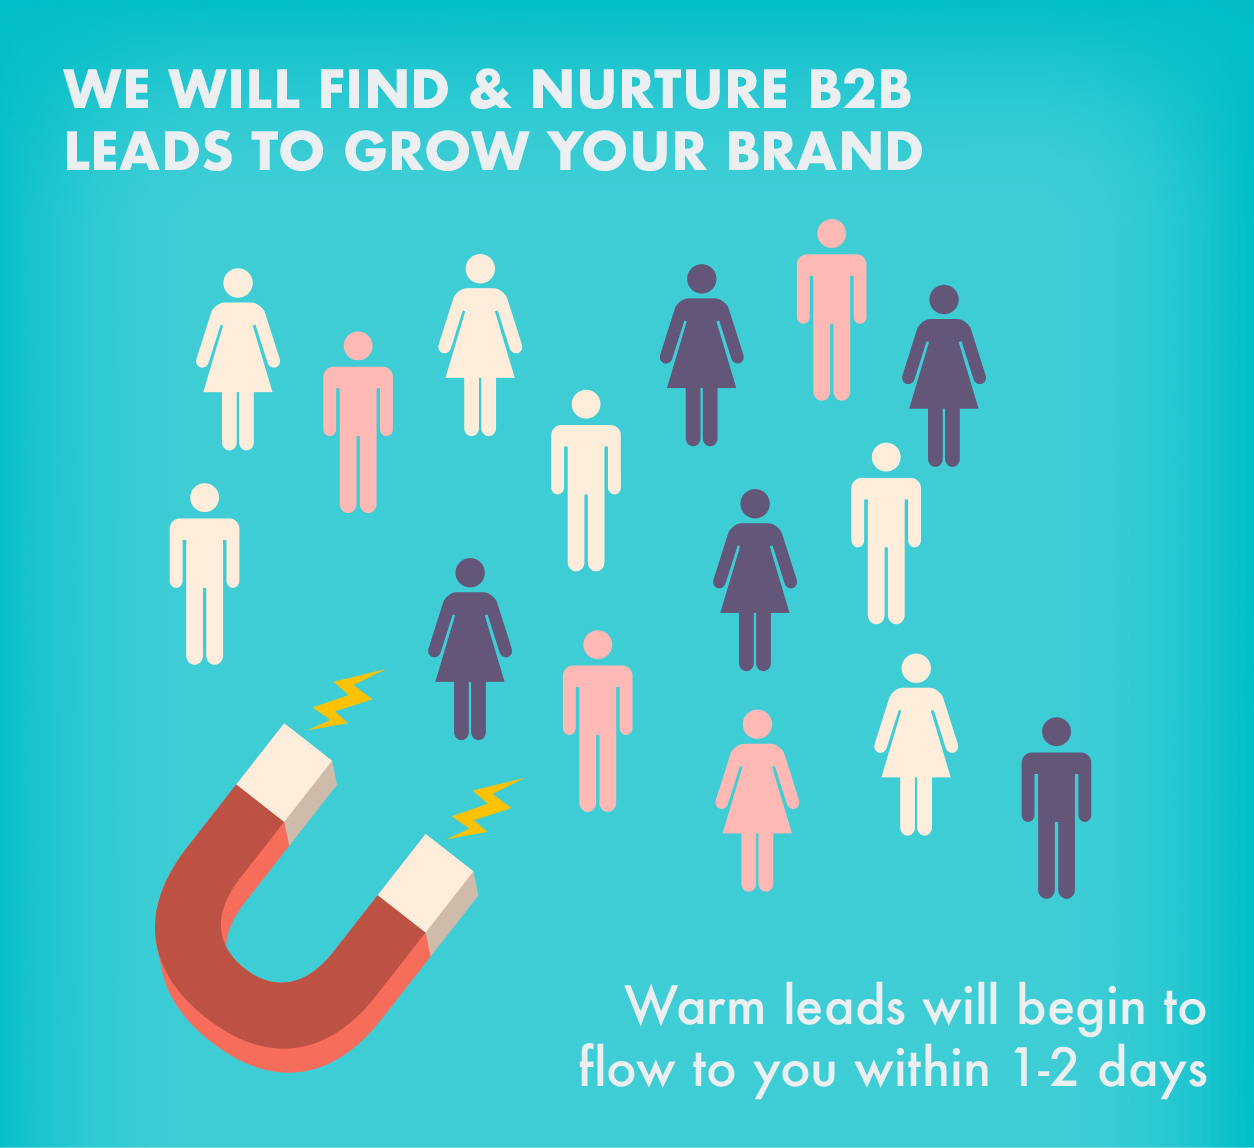 WE will find and nurture your B2B leads to grow your brand